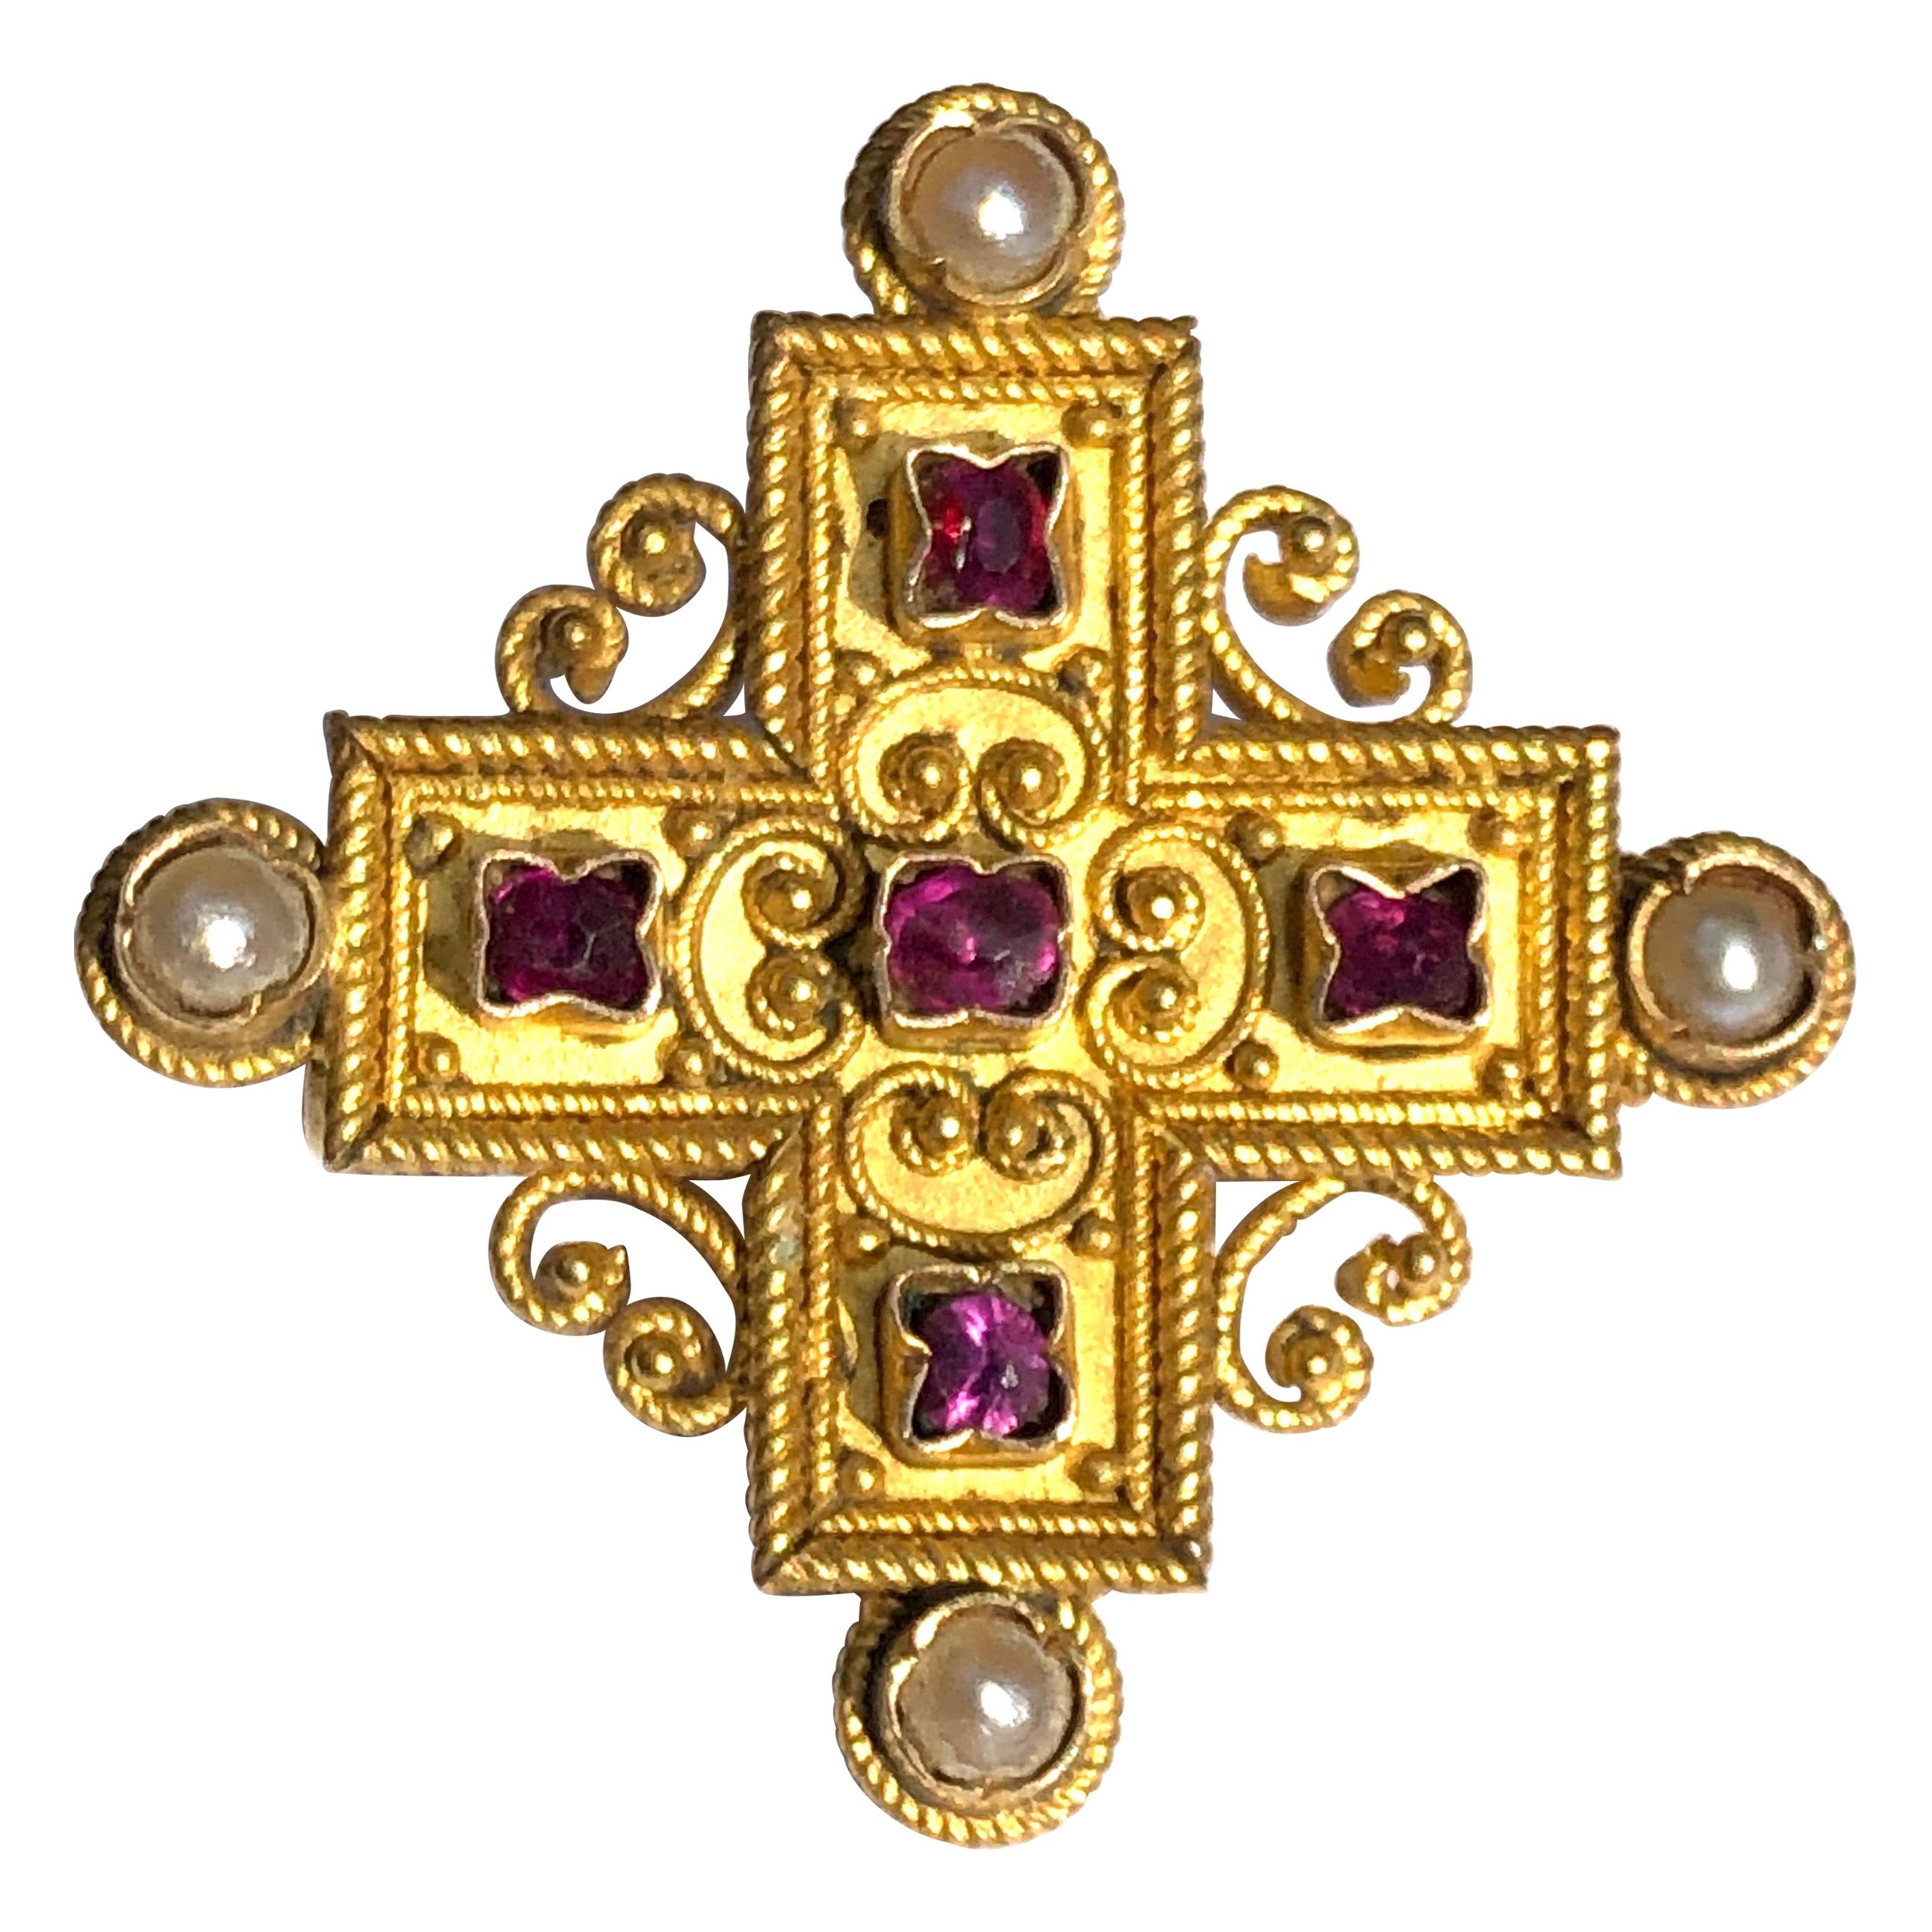 1.00Ct Round Cross Pendant Necklace 14k Gold Over Sterling Silver $495